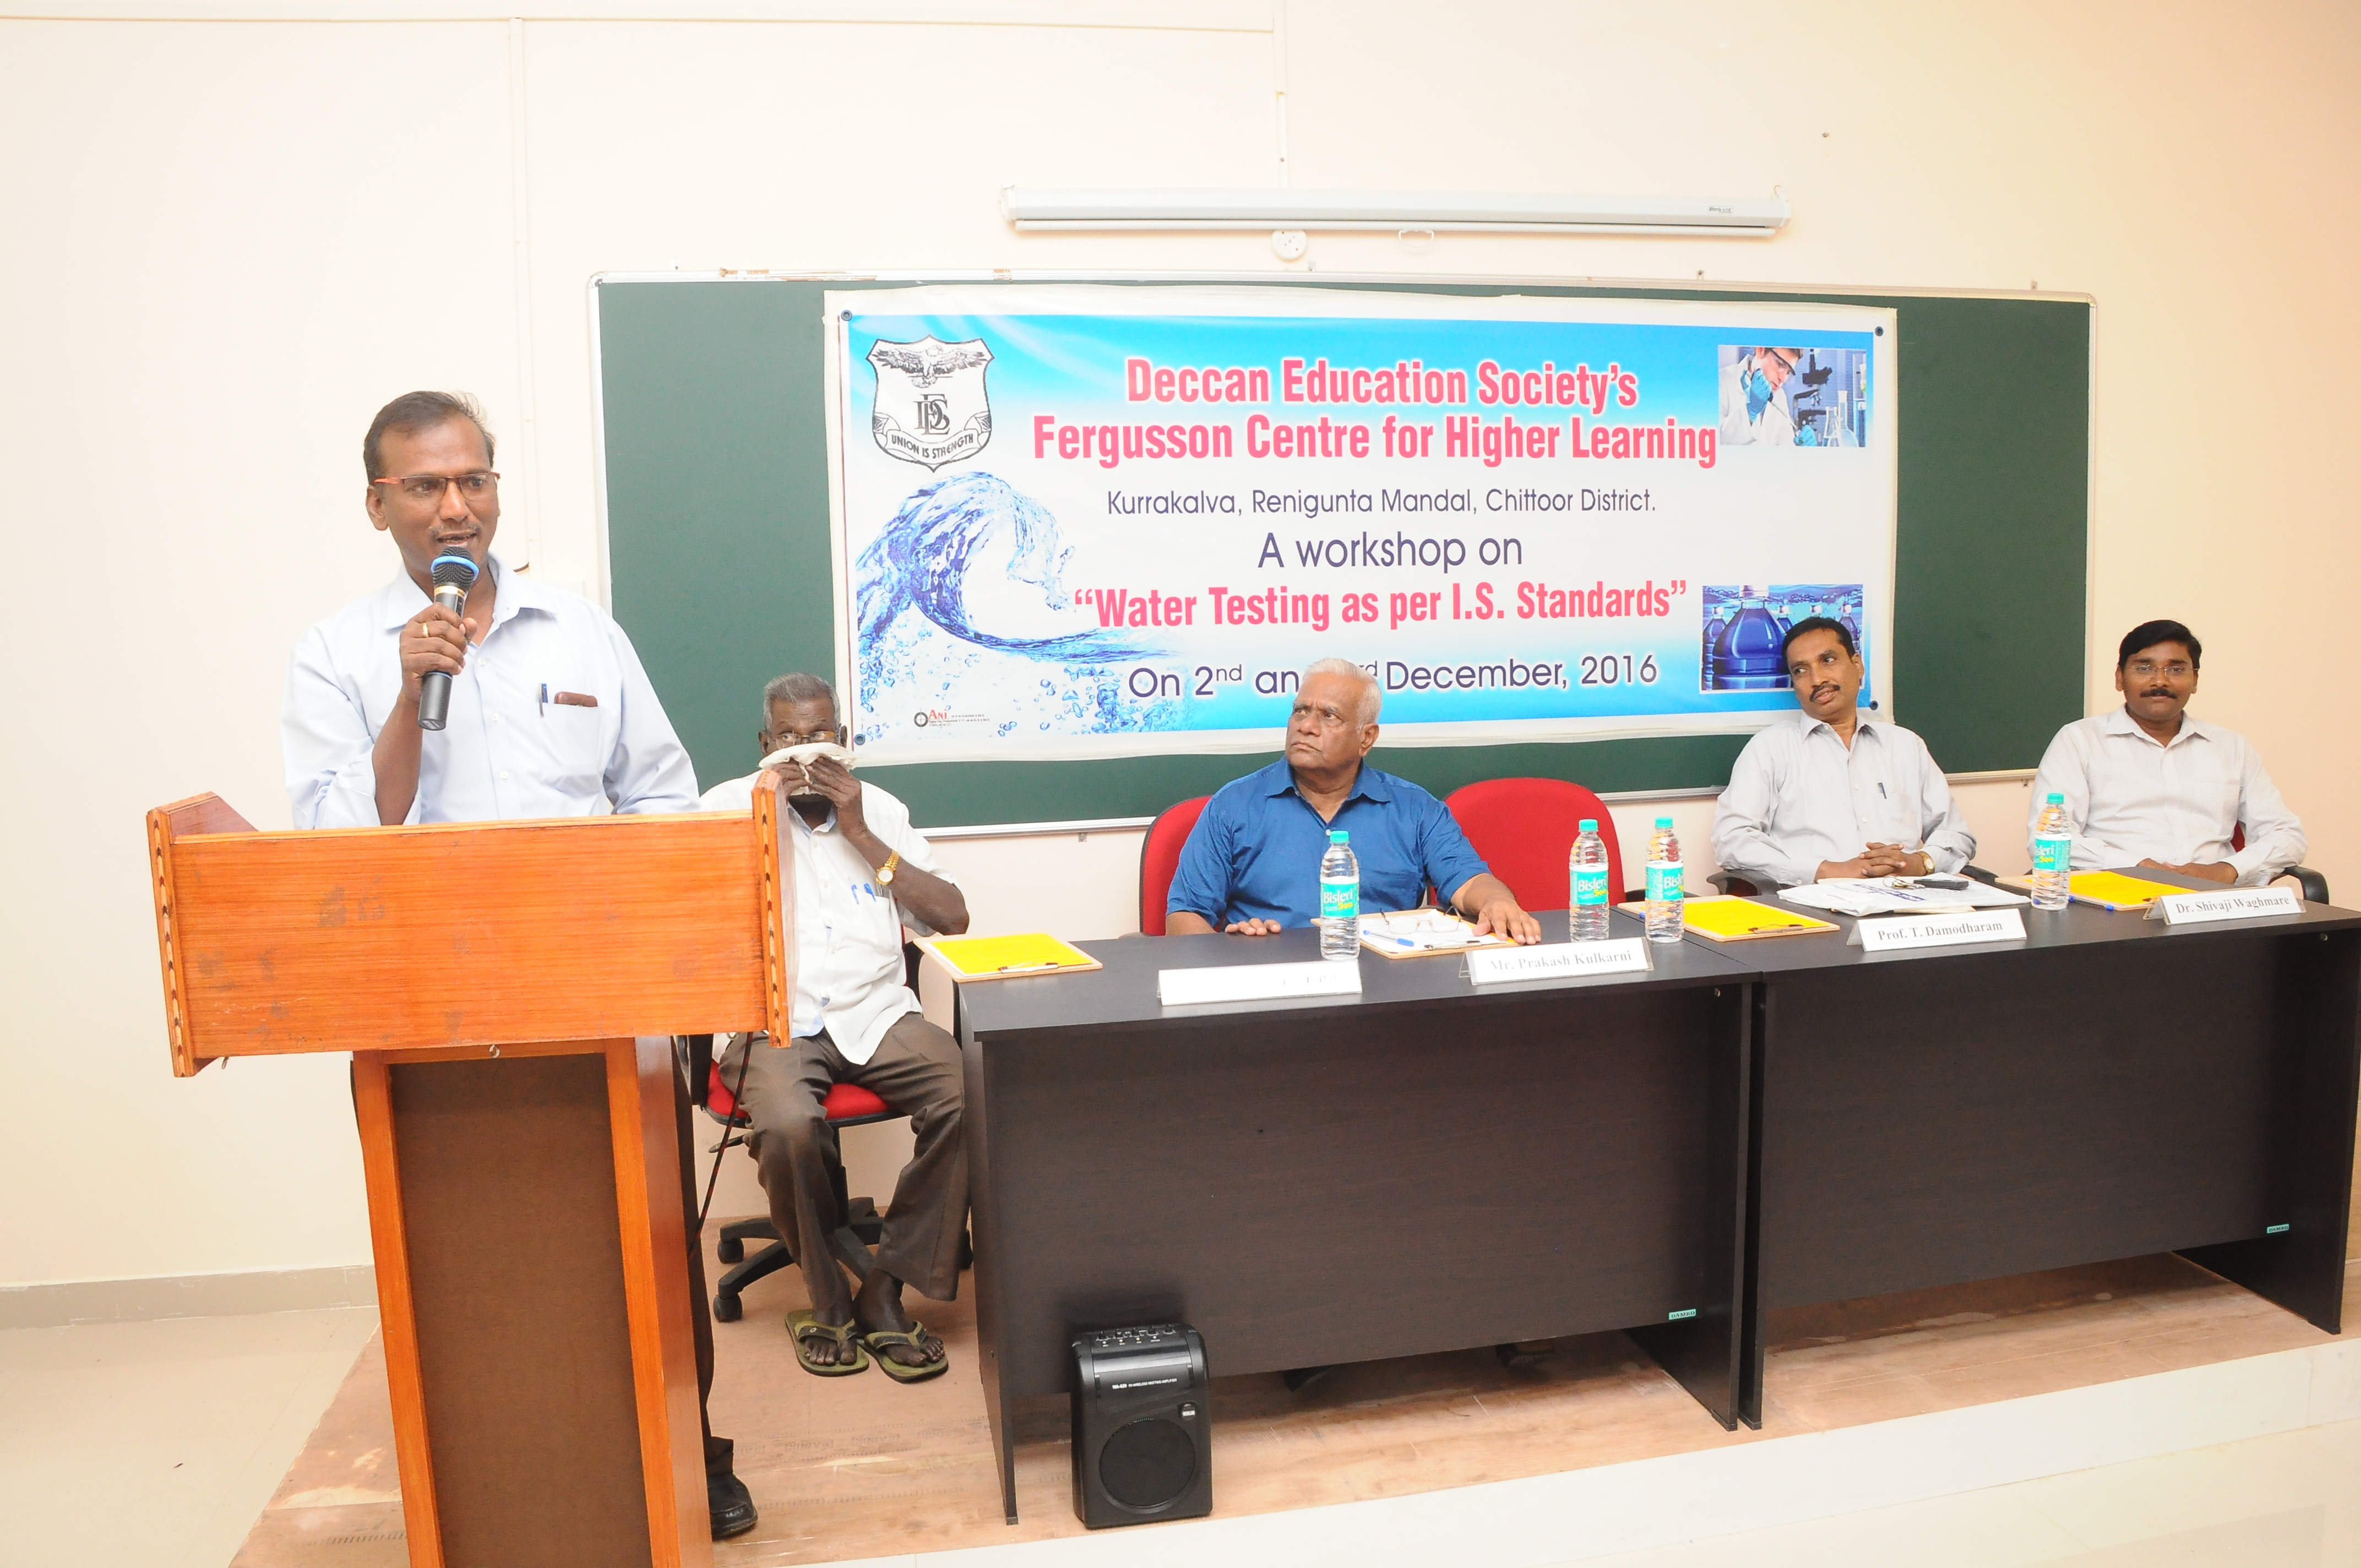 A key note address Hon. Prof. T. Damodharam